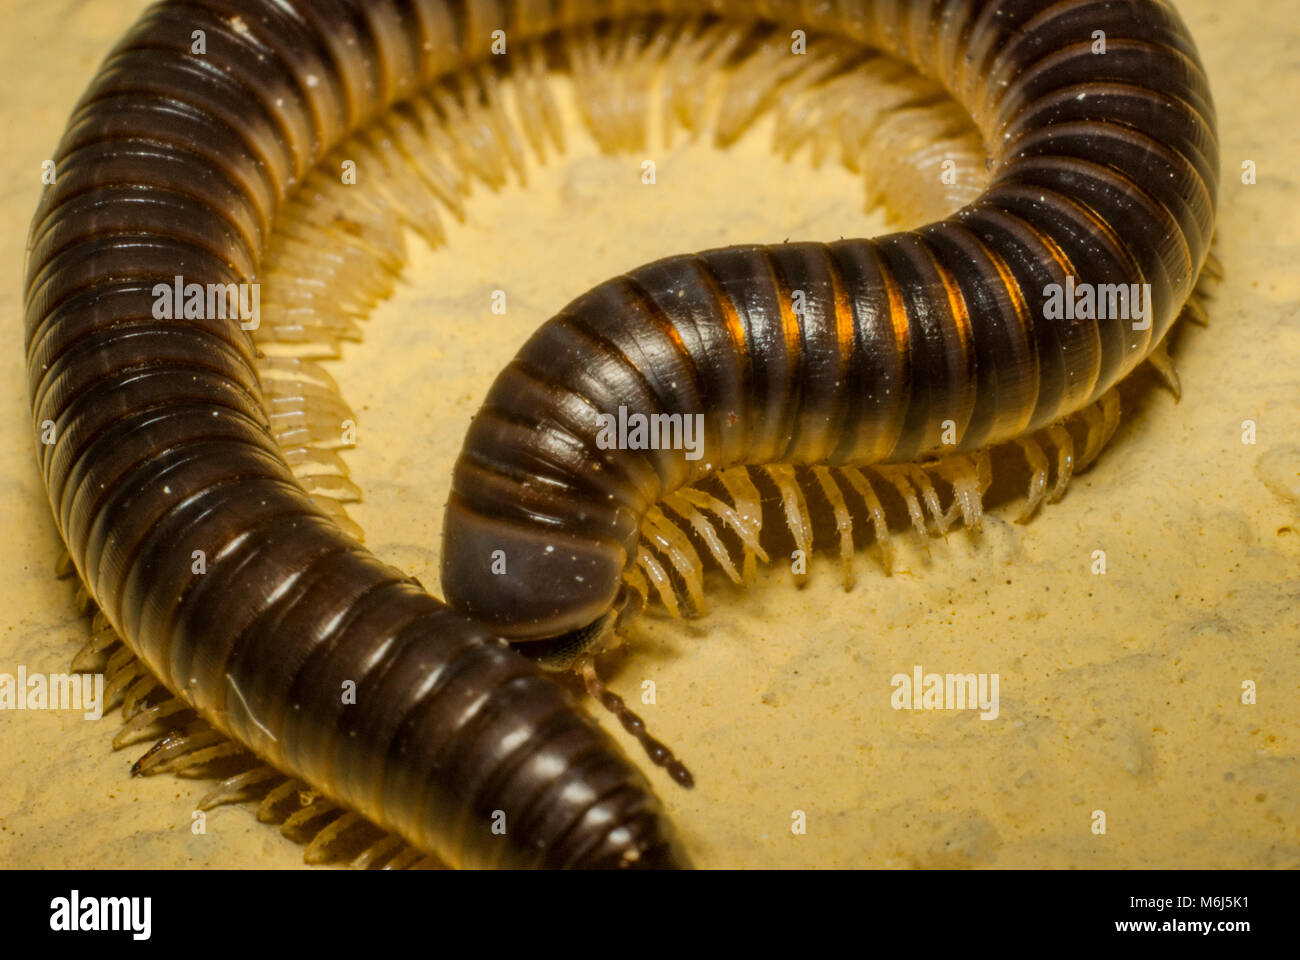 Is A Millipede A Worm Stock Photos & Is A Millipede A Worm